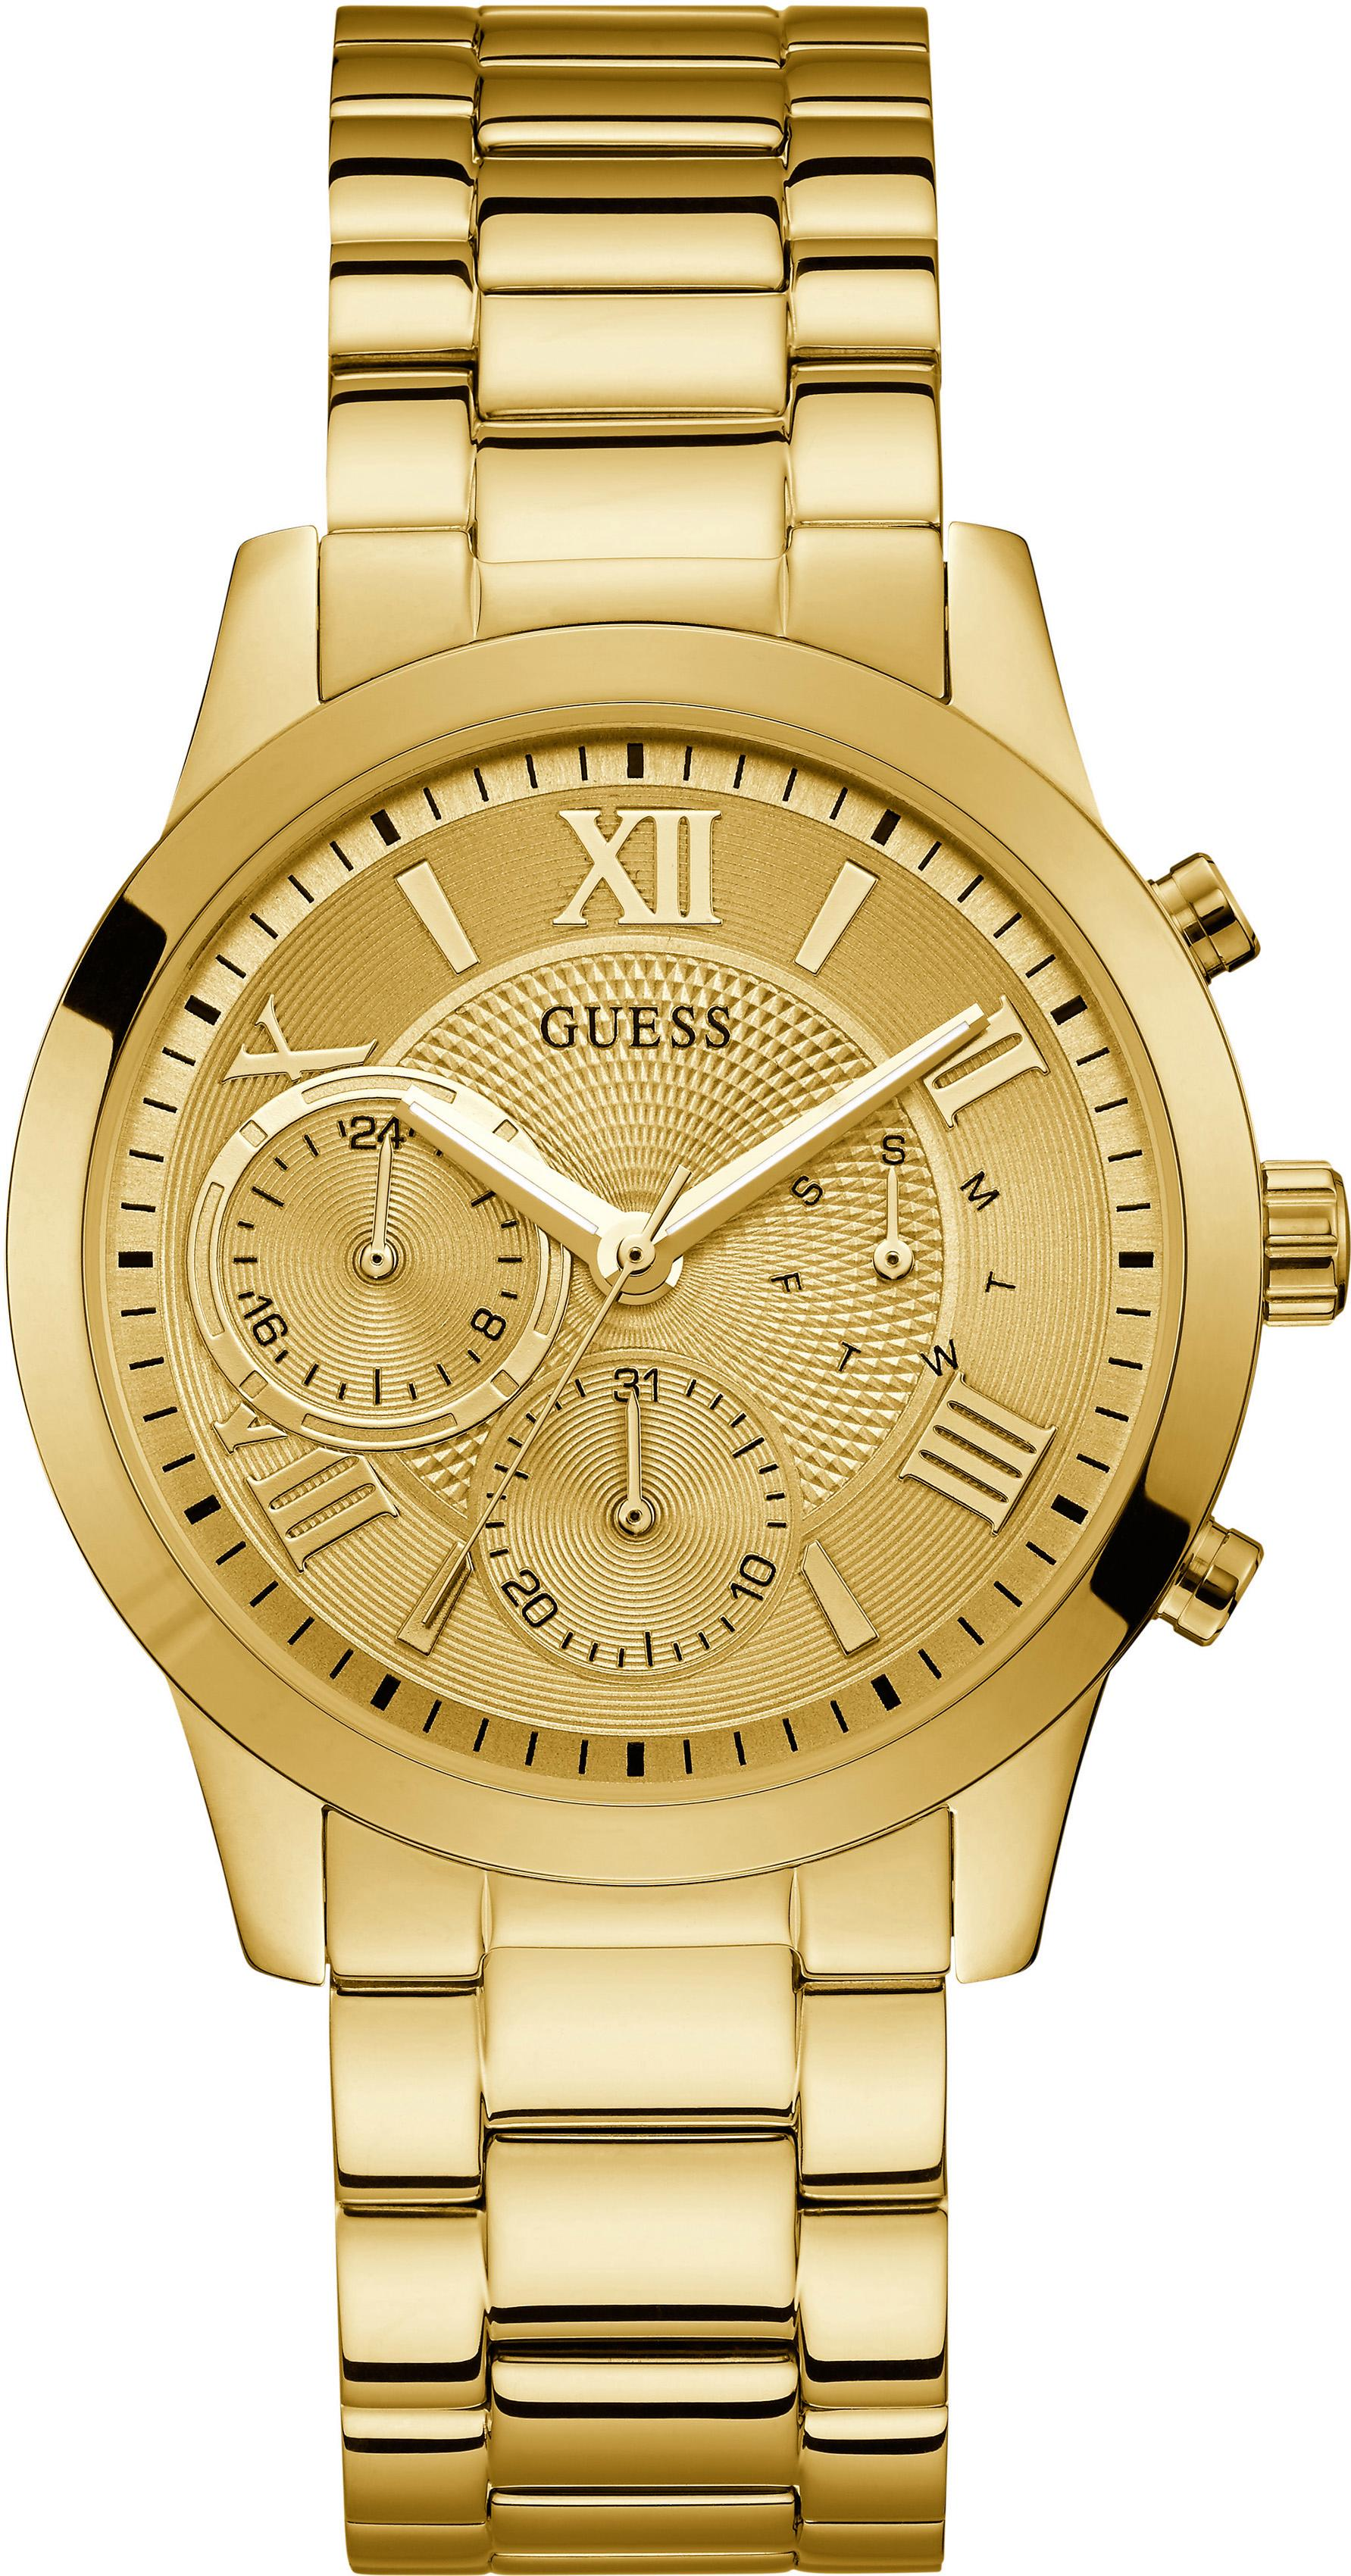 Guess Multifunktionsuhr SOLAR W1070L2 | Uhren > Multifunktionsuhren | Guess